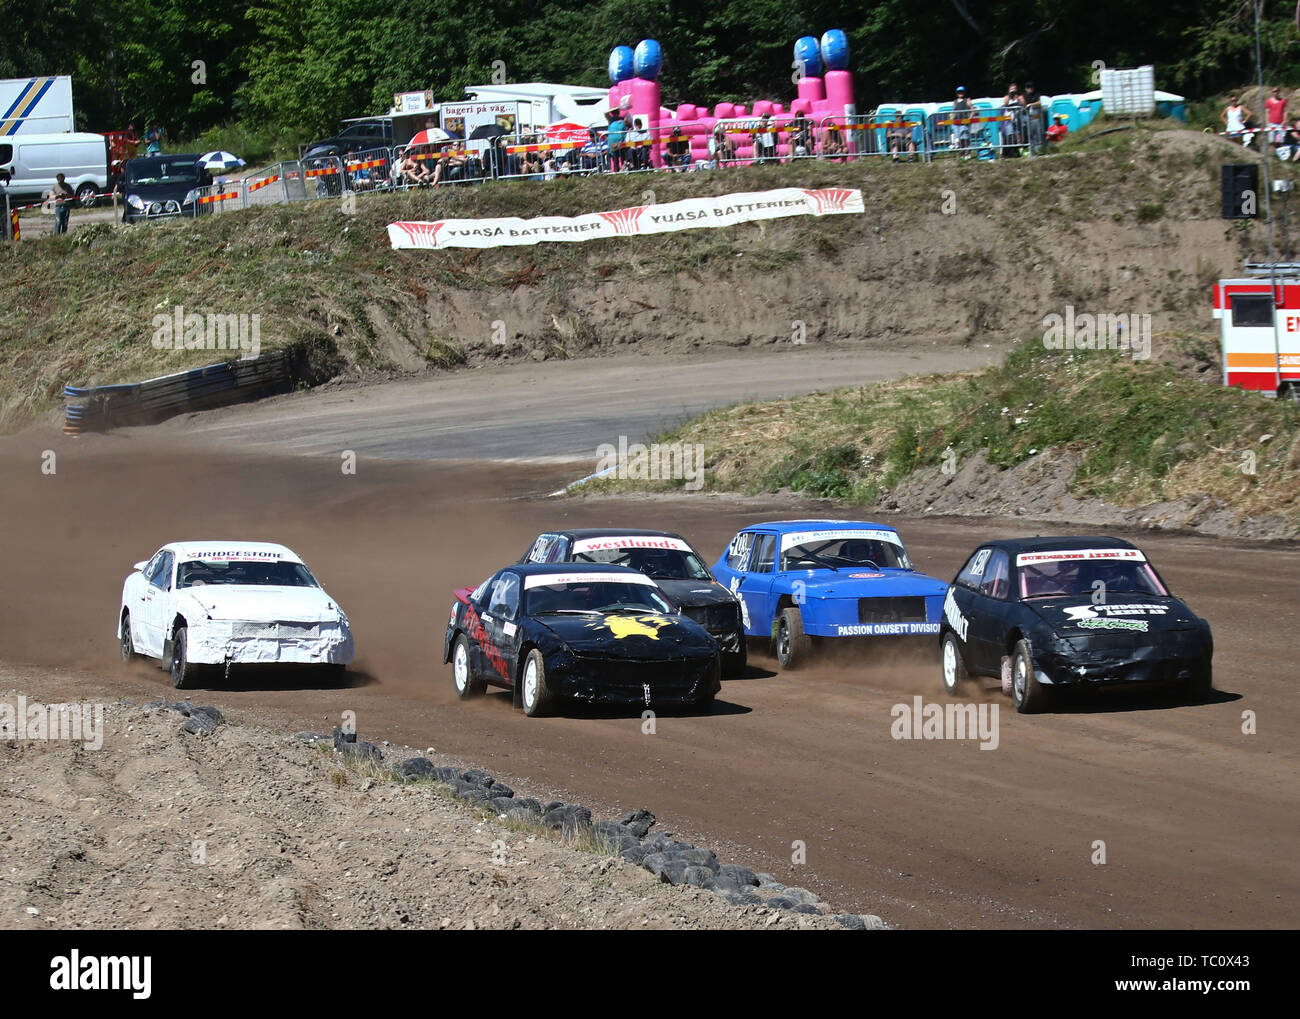 MOTALA 20170719   Folkracefestivalen i Motala, onsdagen.      Folk racing or Folkrace is a popular, inexpensive, and entry-level form of Nordic rallycross that originally comes from Finland, where it is called Jokamiesluokka or Jokkis (officially Jokamiehenluokka, Everyman's class), in Swedish 'Folkrace'. In Latvia it is known as folkreiss, in Norway and Denmark it is known as Bilcross and Folkeræs, respectively. Bild Jeppe Gustafsson - Stock Image